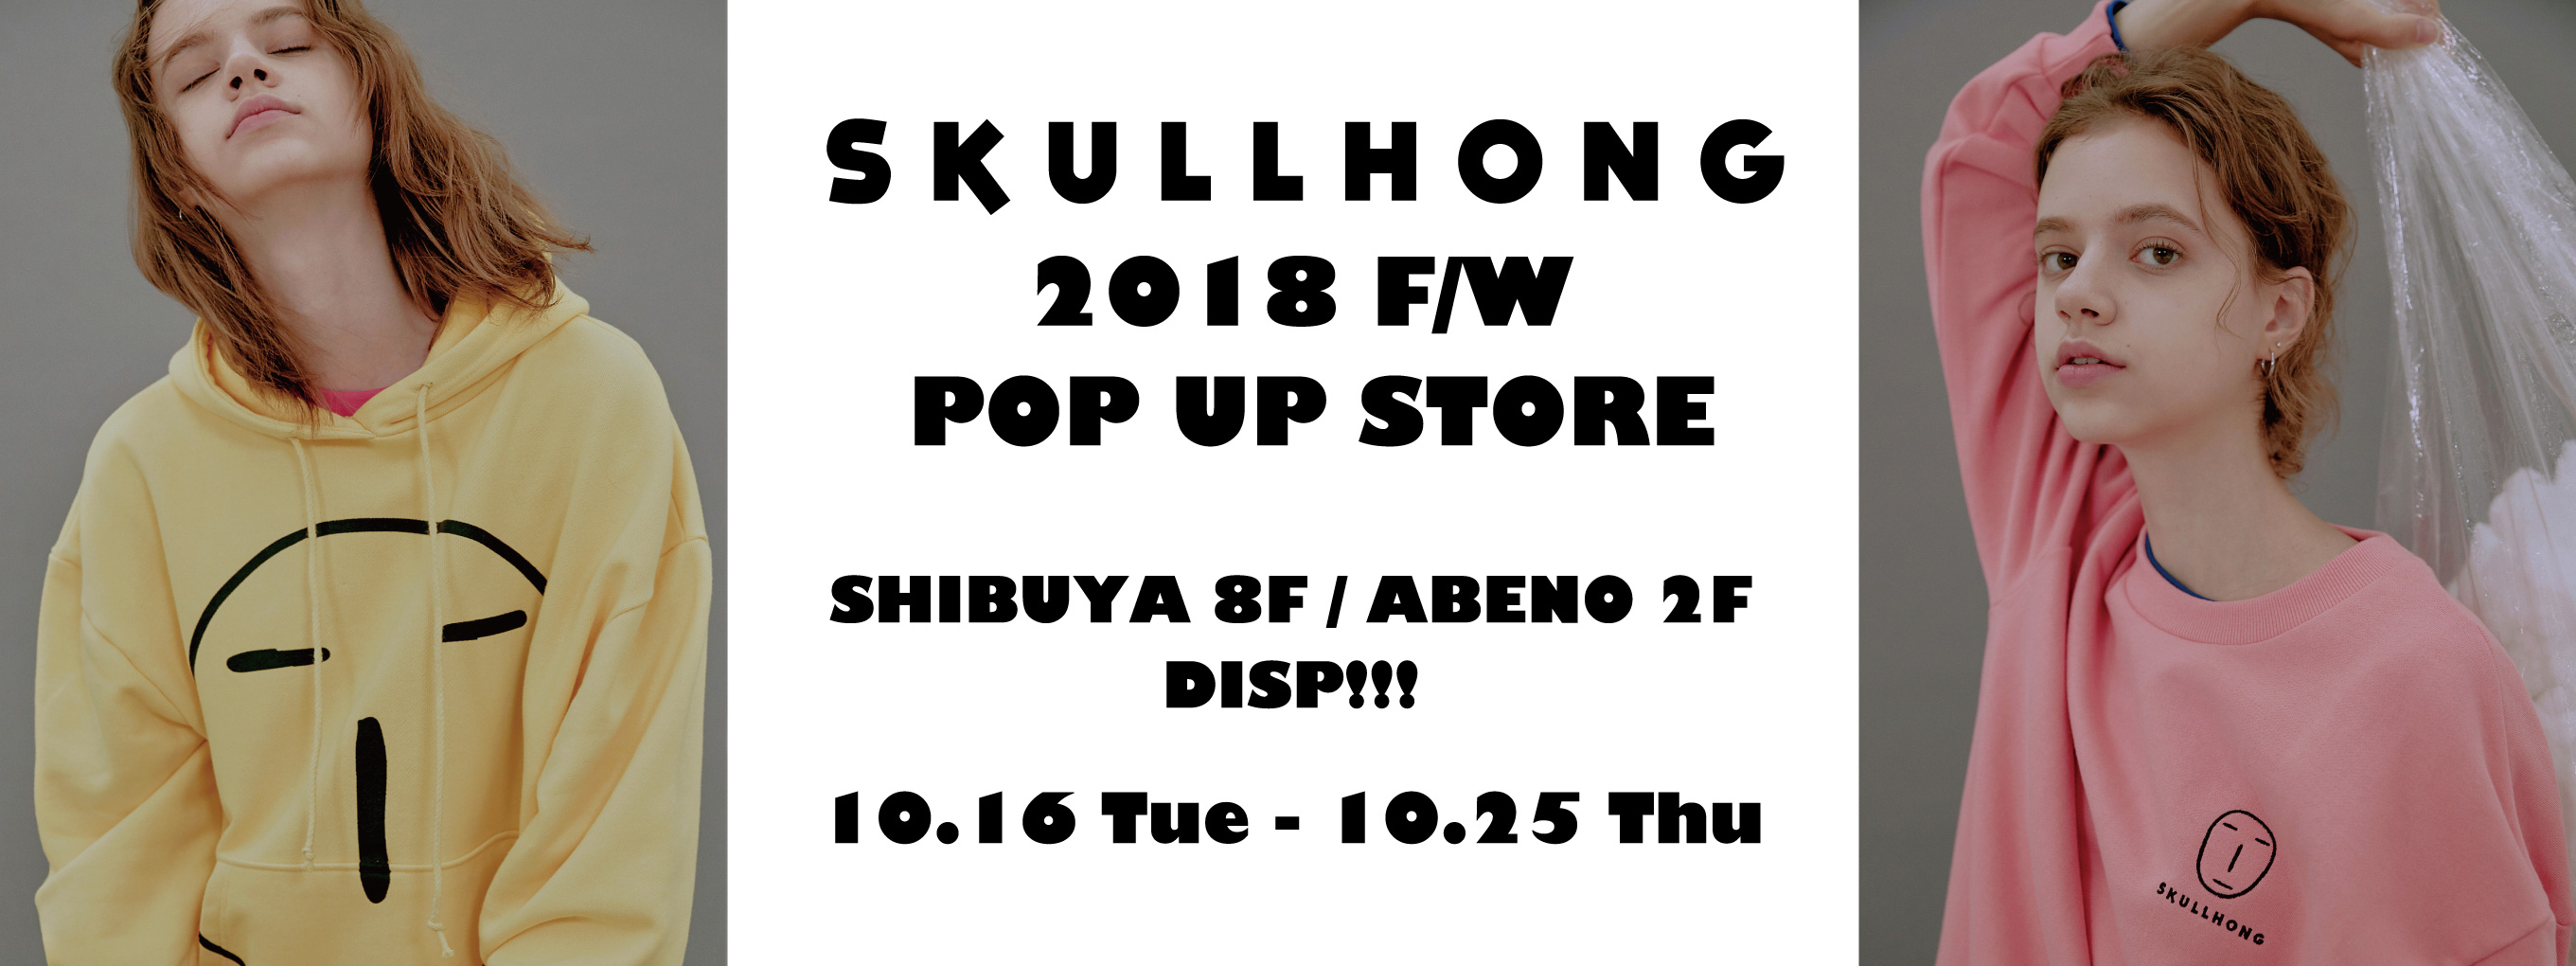 SKULLHONG 2018 F/W POP UP STORE